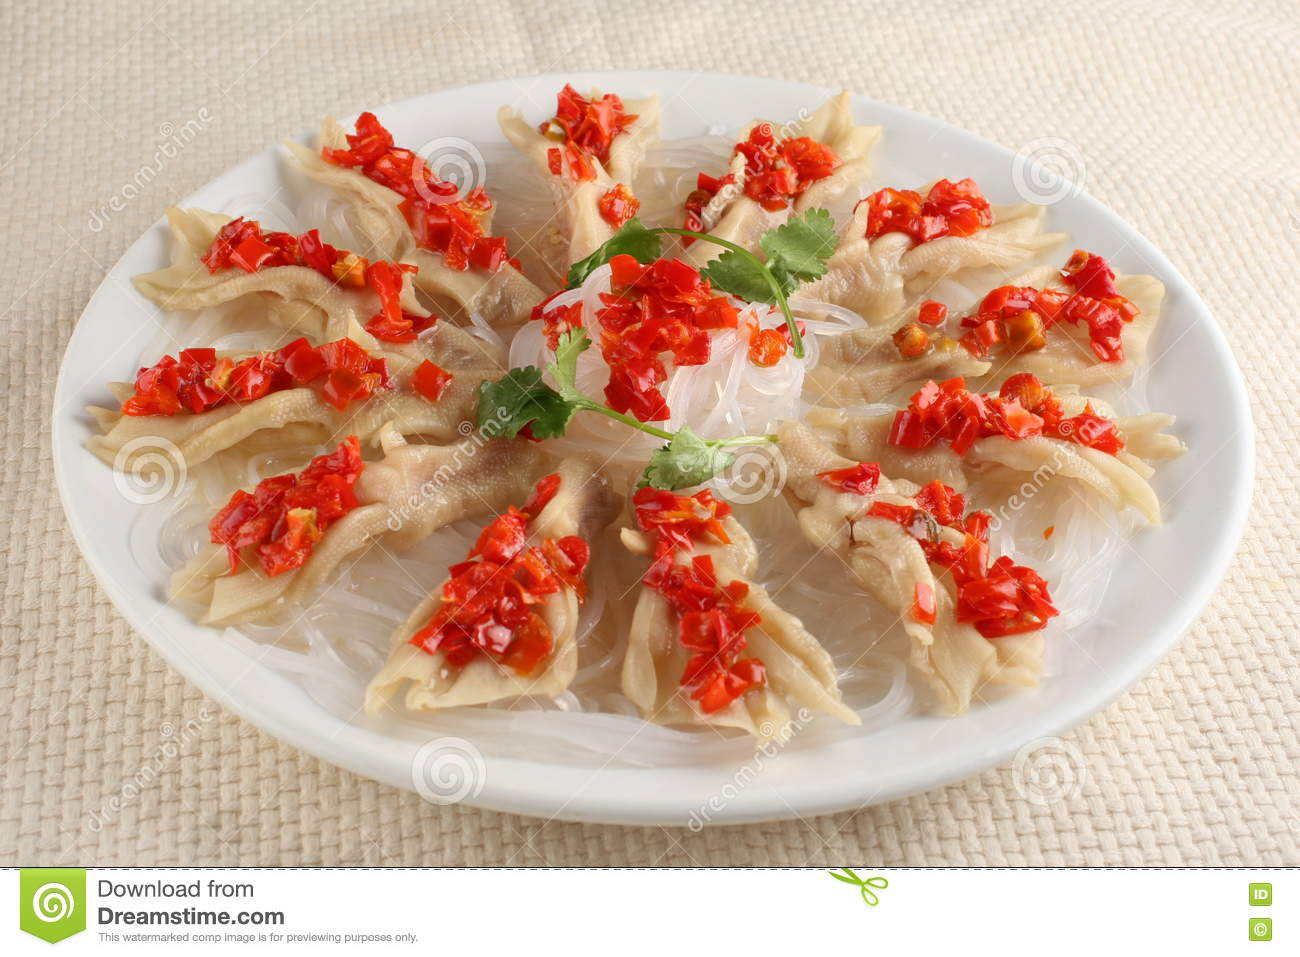 Cuisine chinoise photo stock image 68028918 for Cuisine chinoise